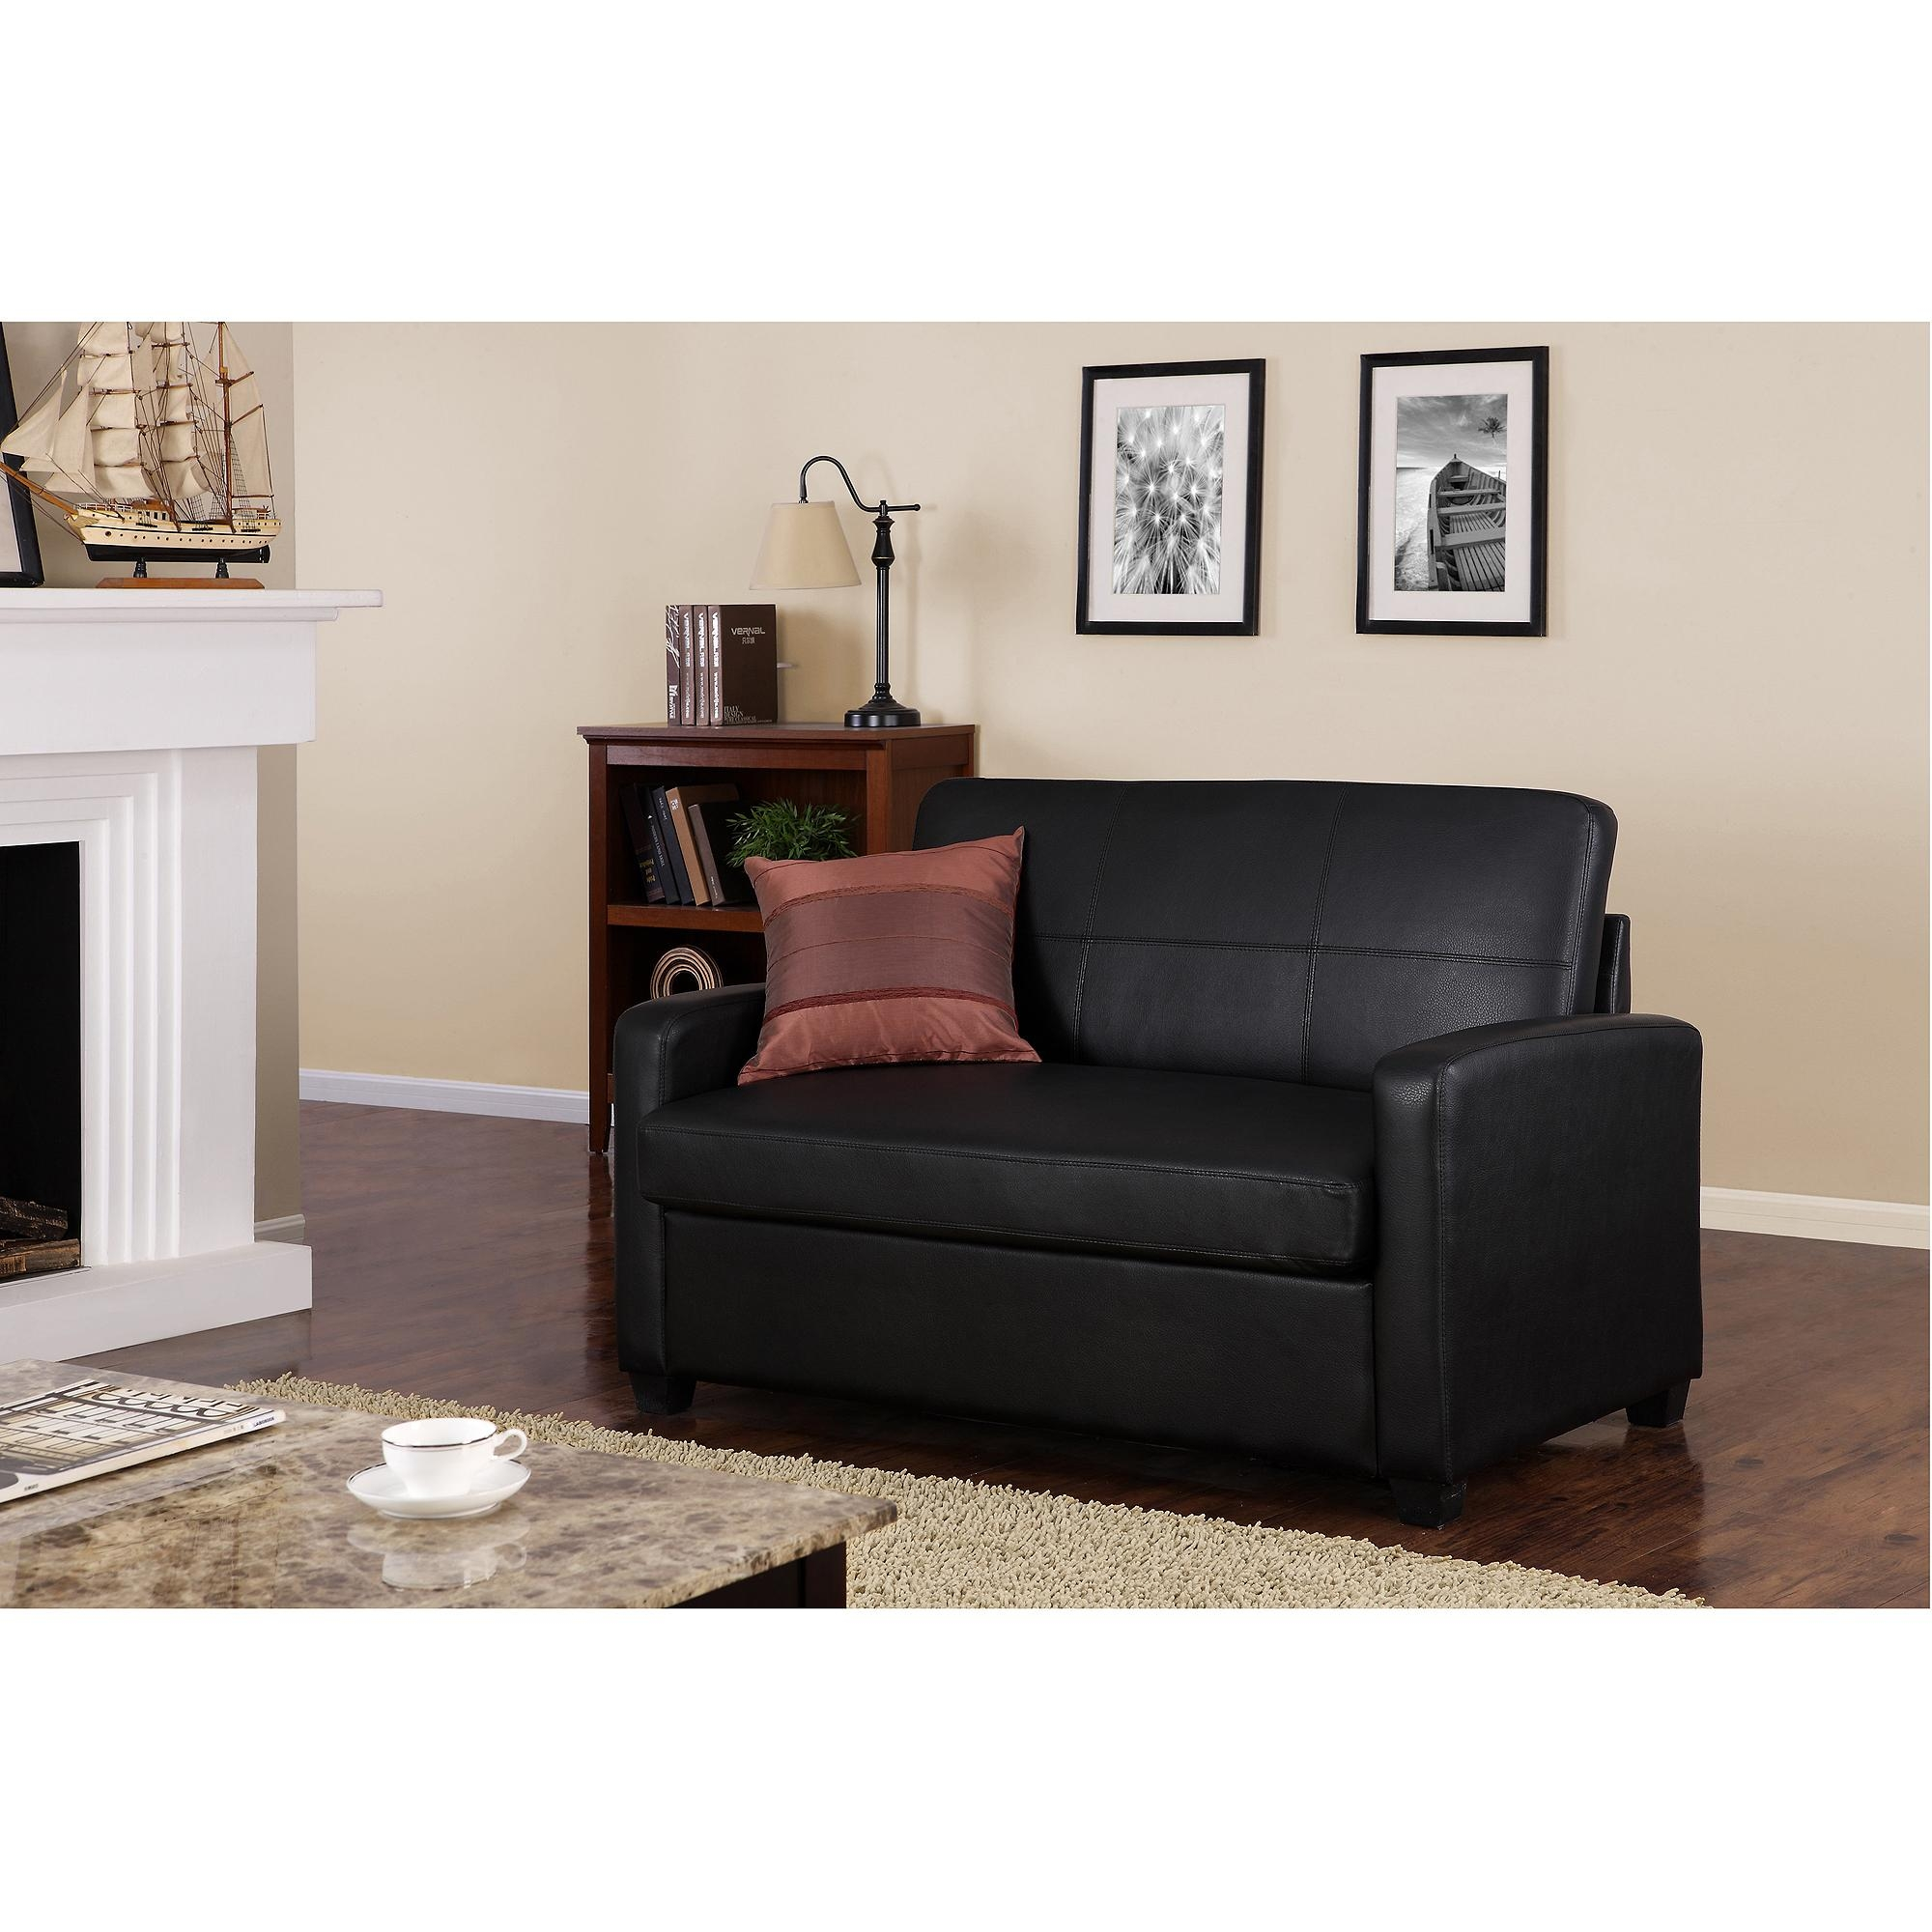 Sofas Center : Akali Sectional Sleeper Sofa Tufted Chaise Lounge Pertaining  To Faux Leather Sleeper Sofas